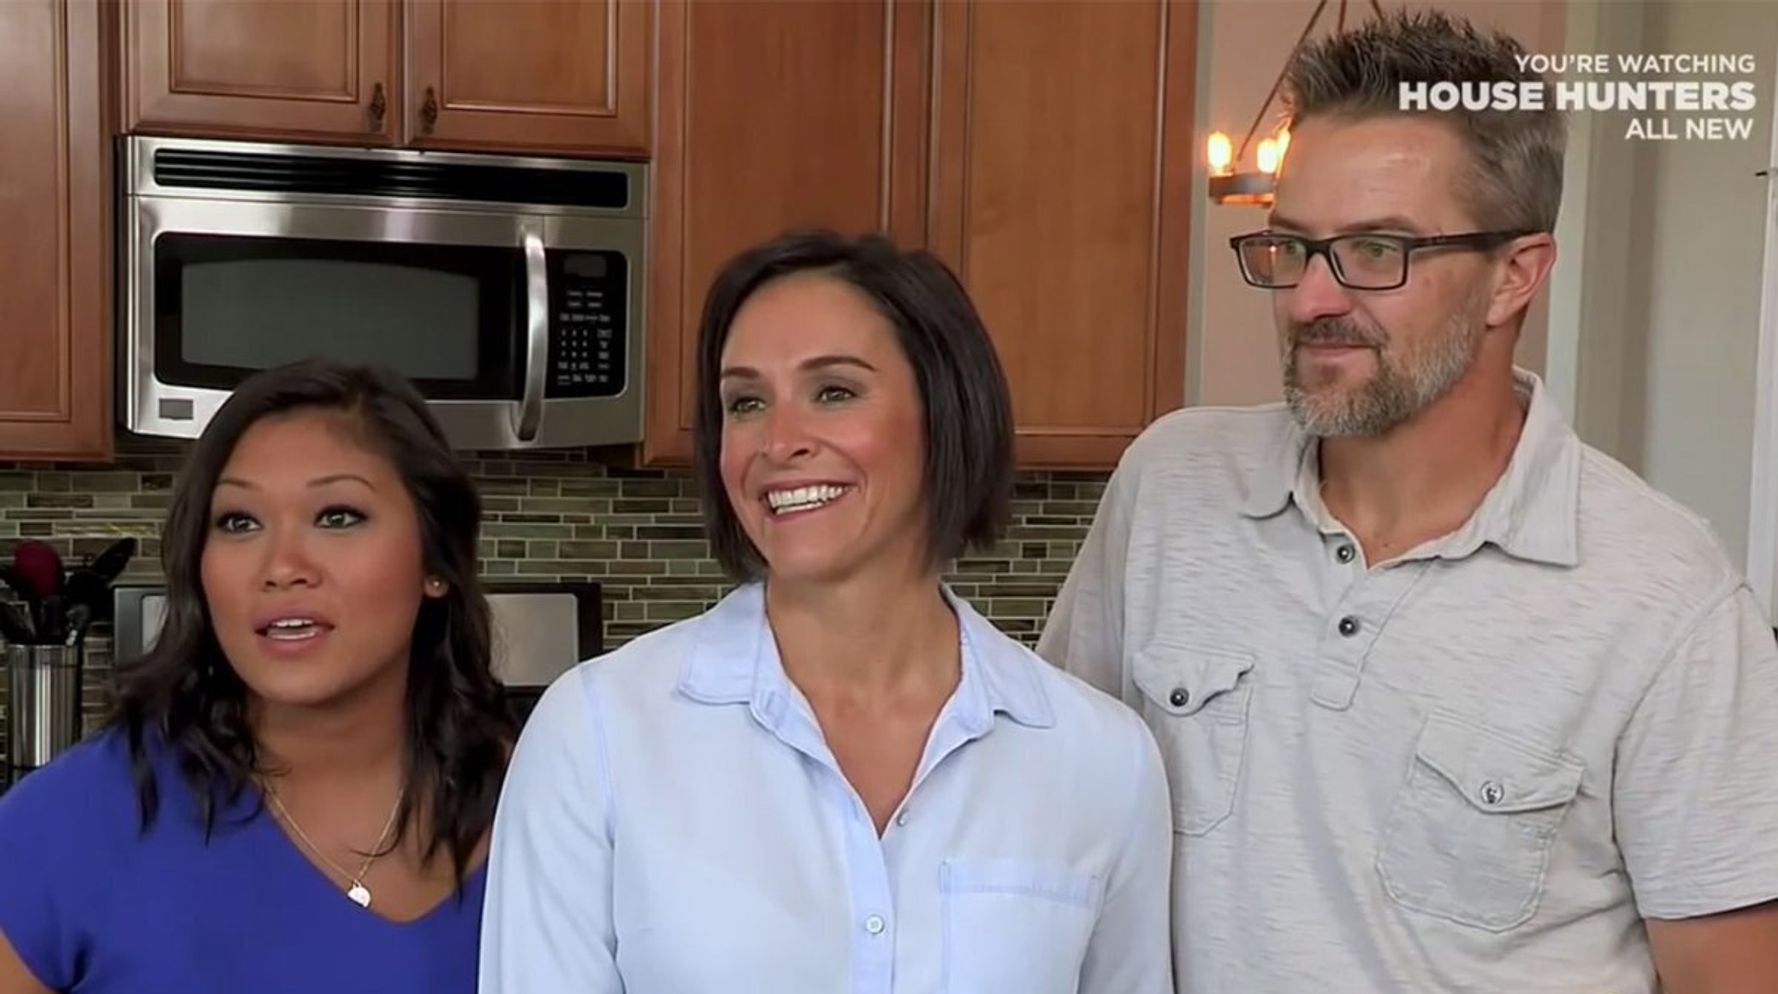 People Are Obsessed With The Throuple That Appeared On 'House Hunters'